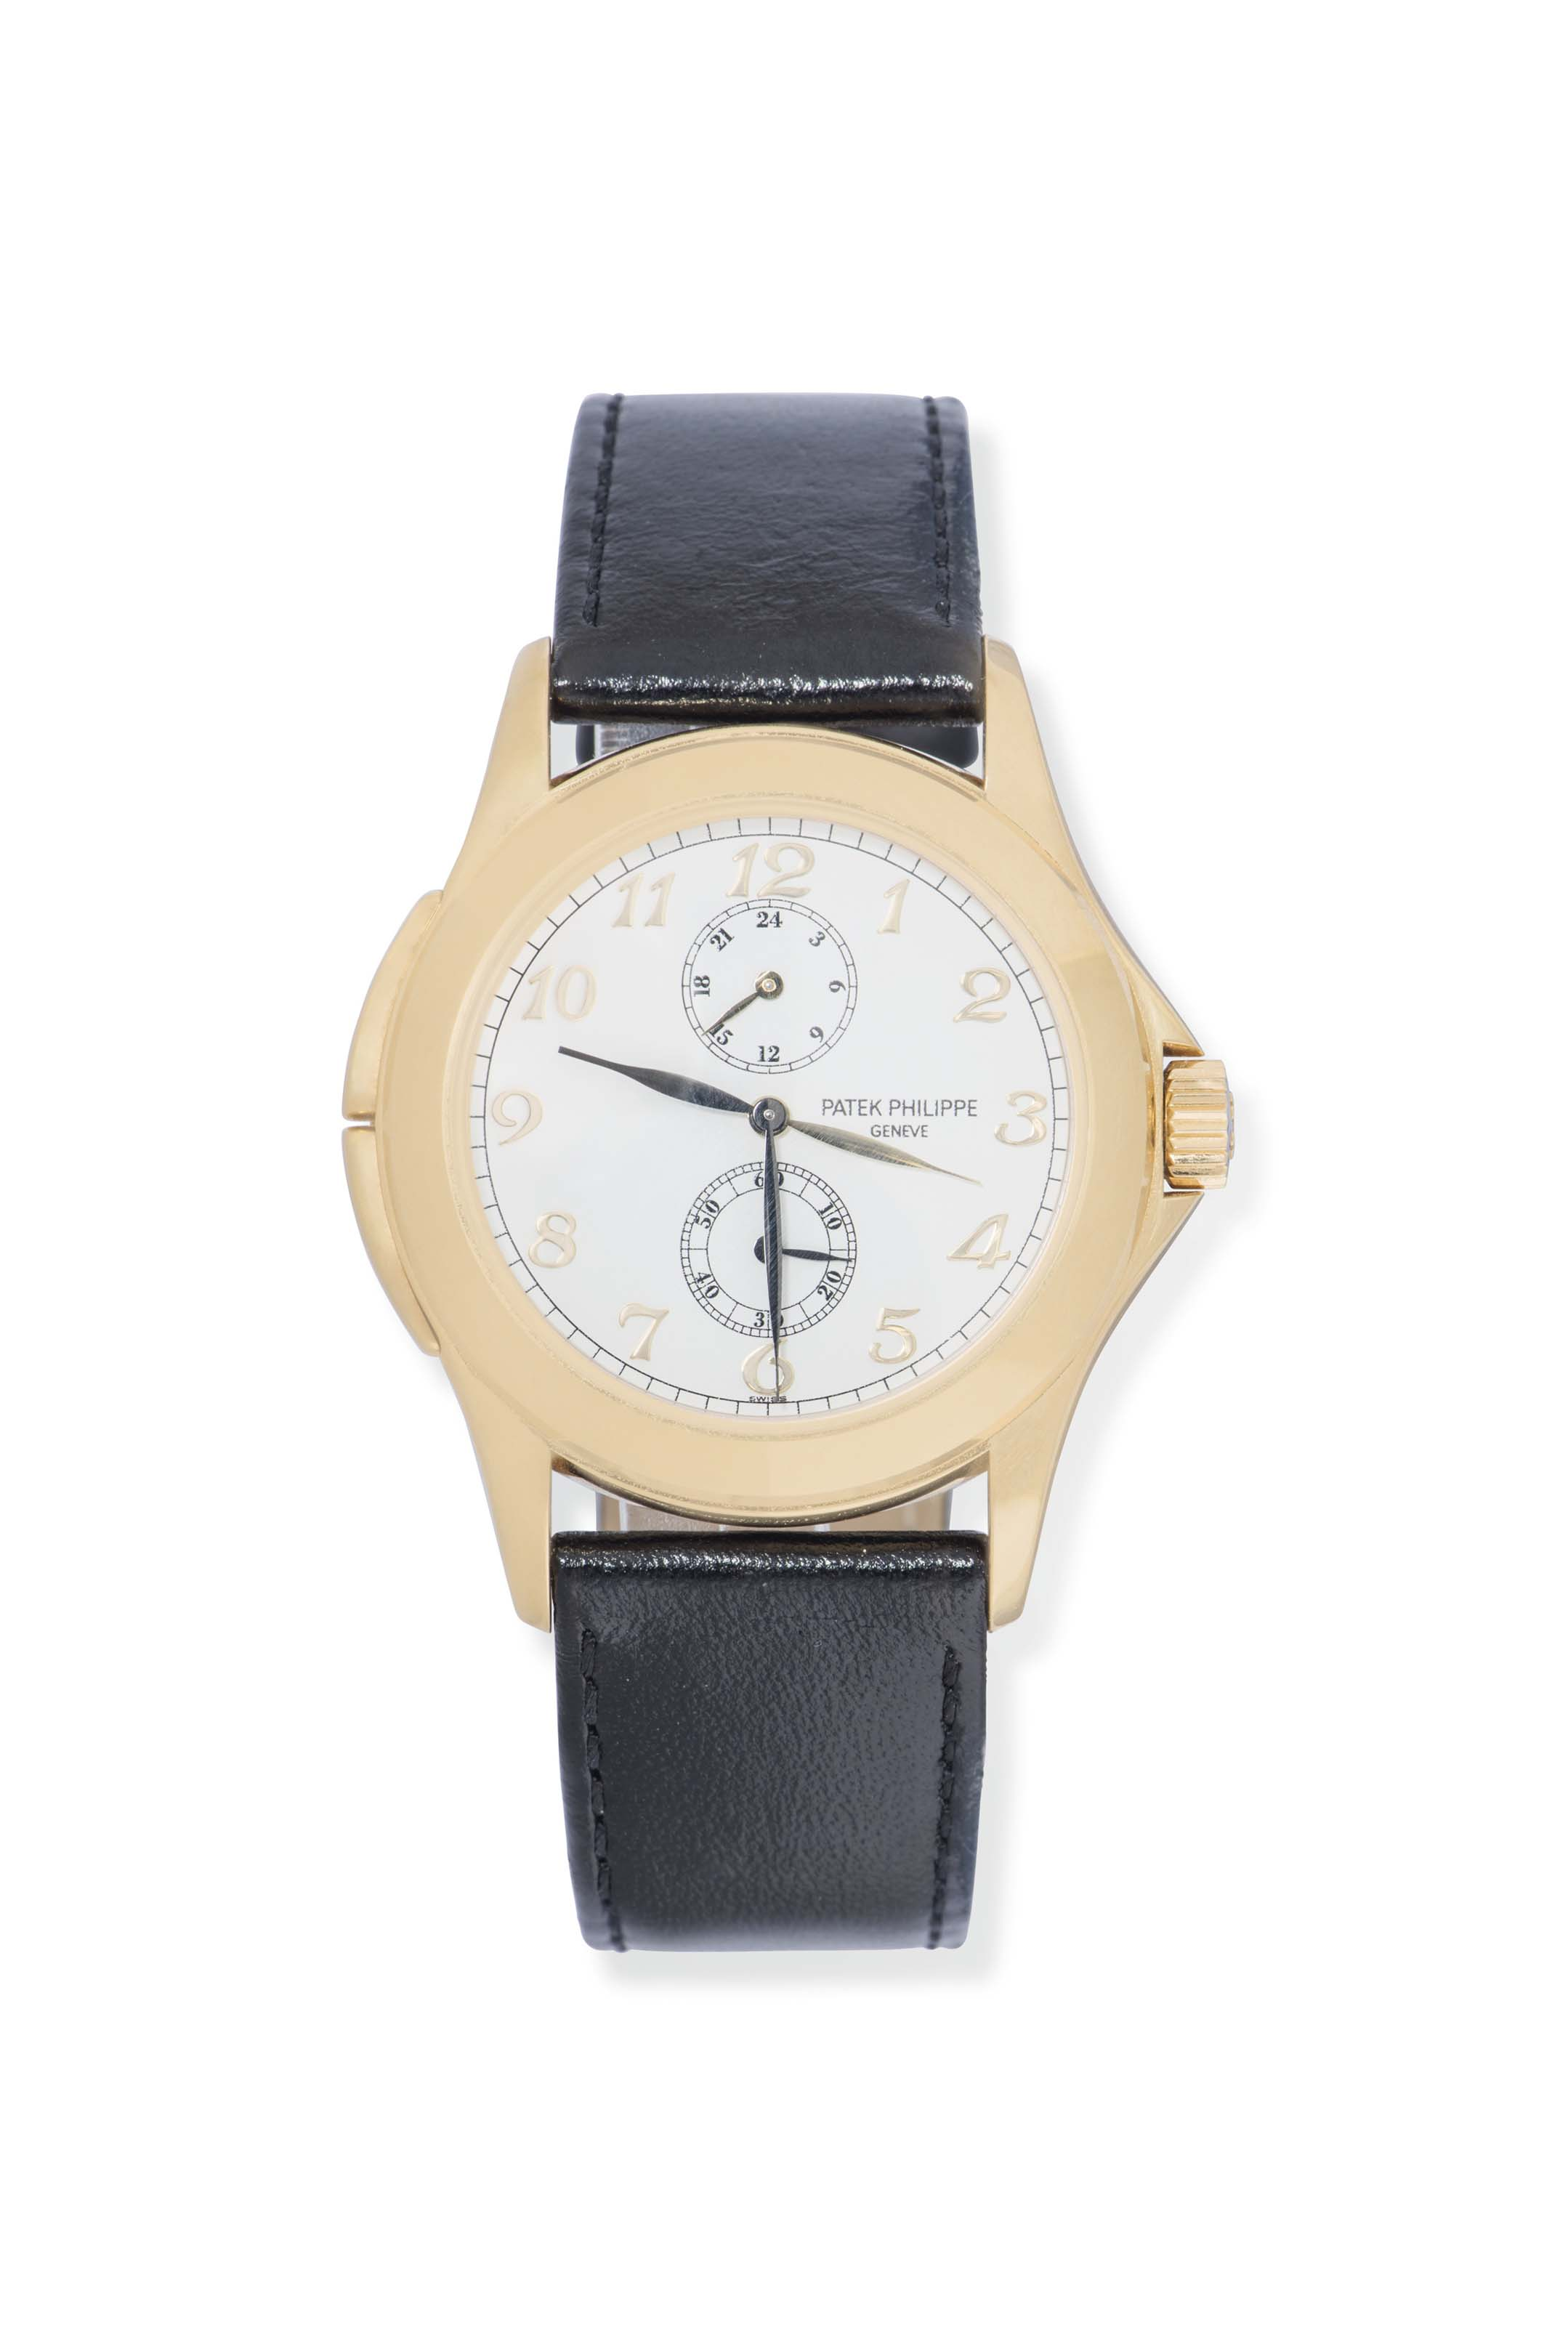 AN 18CT GOLD DUAL TIME WRISTWATCH, BY PATEK PHILIPPE, REF 51...